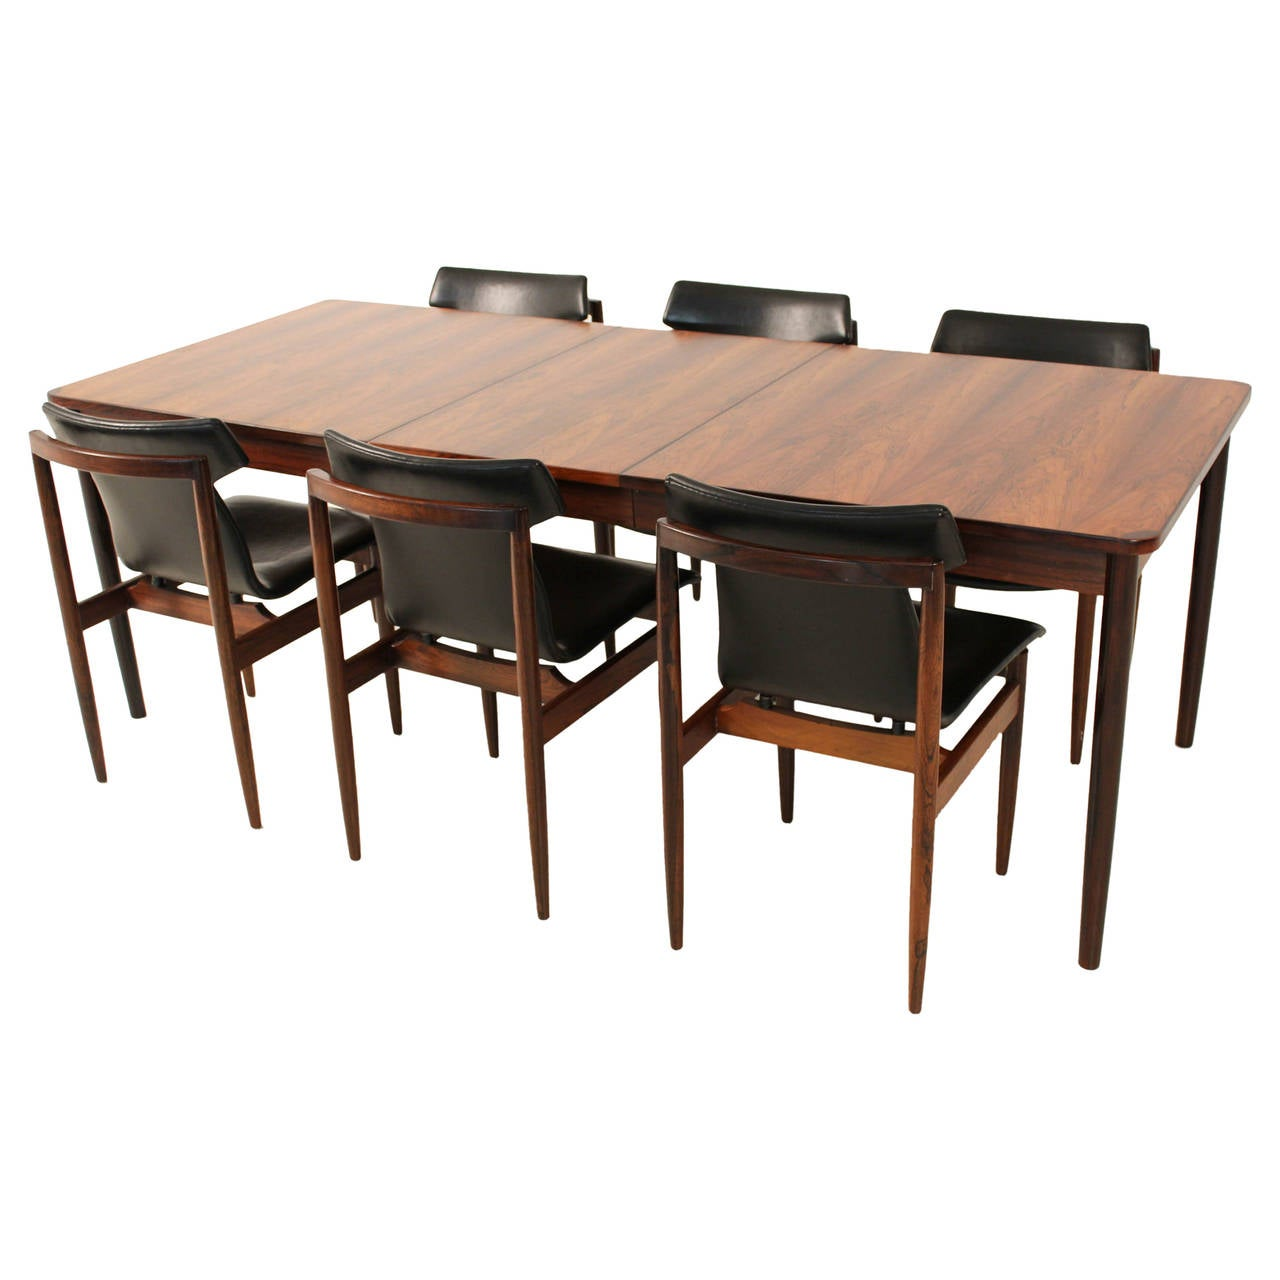 Mid century modern dining table by fristho at 1stdibs for Breakfast table